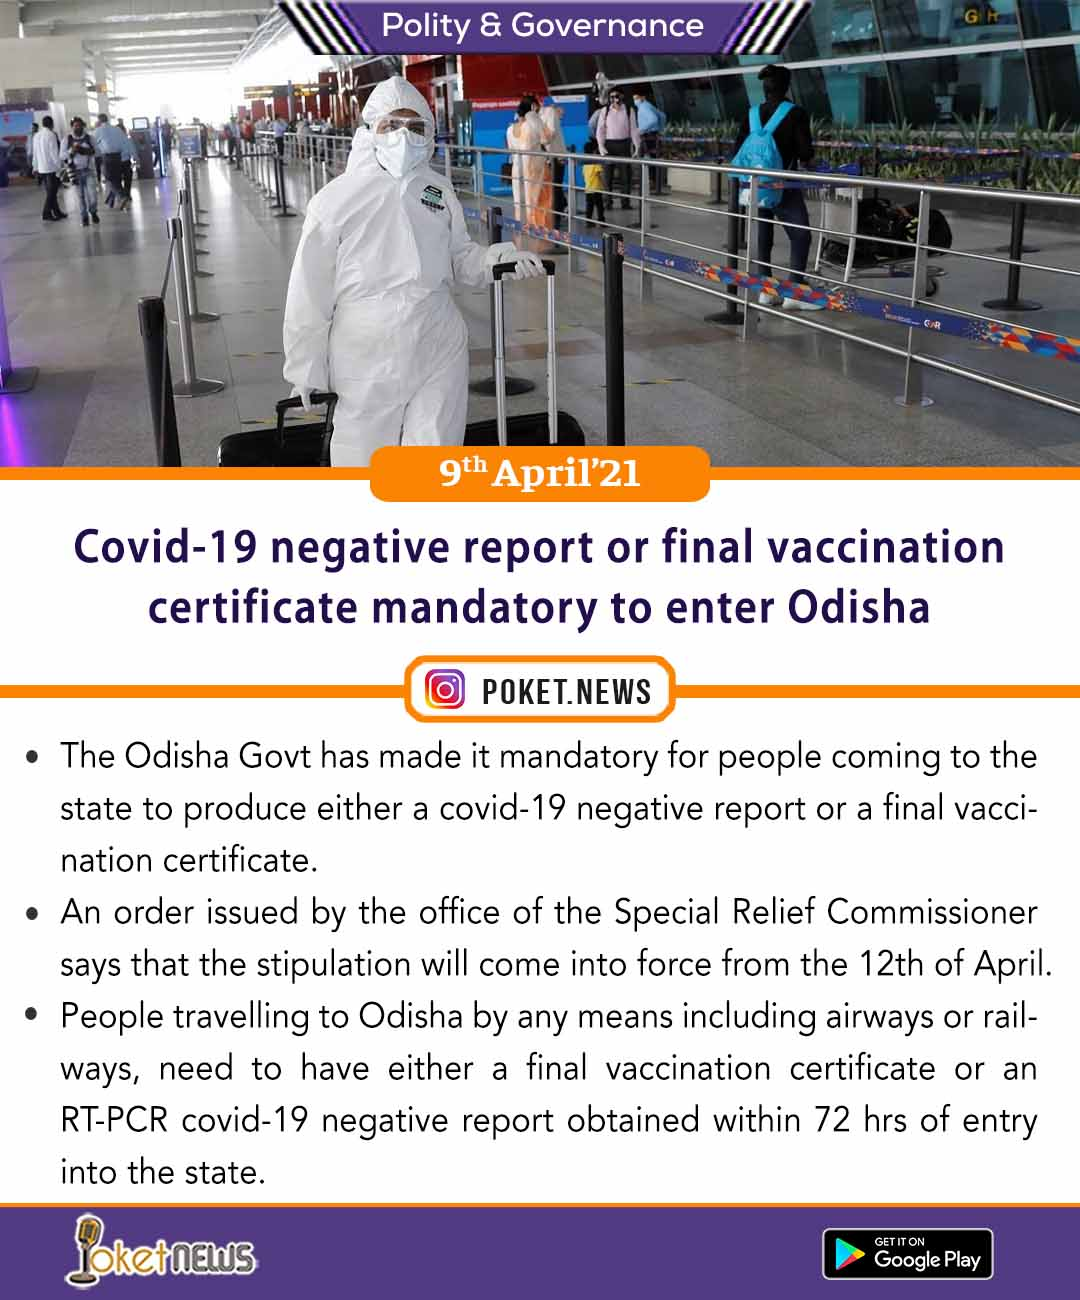 Covid-19 negative report or final vaccination certificate mandatory to enter Odisha